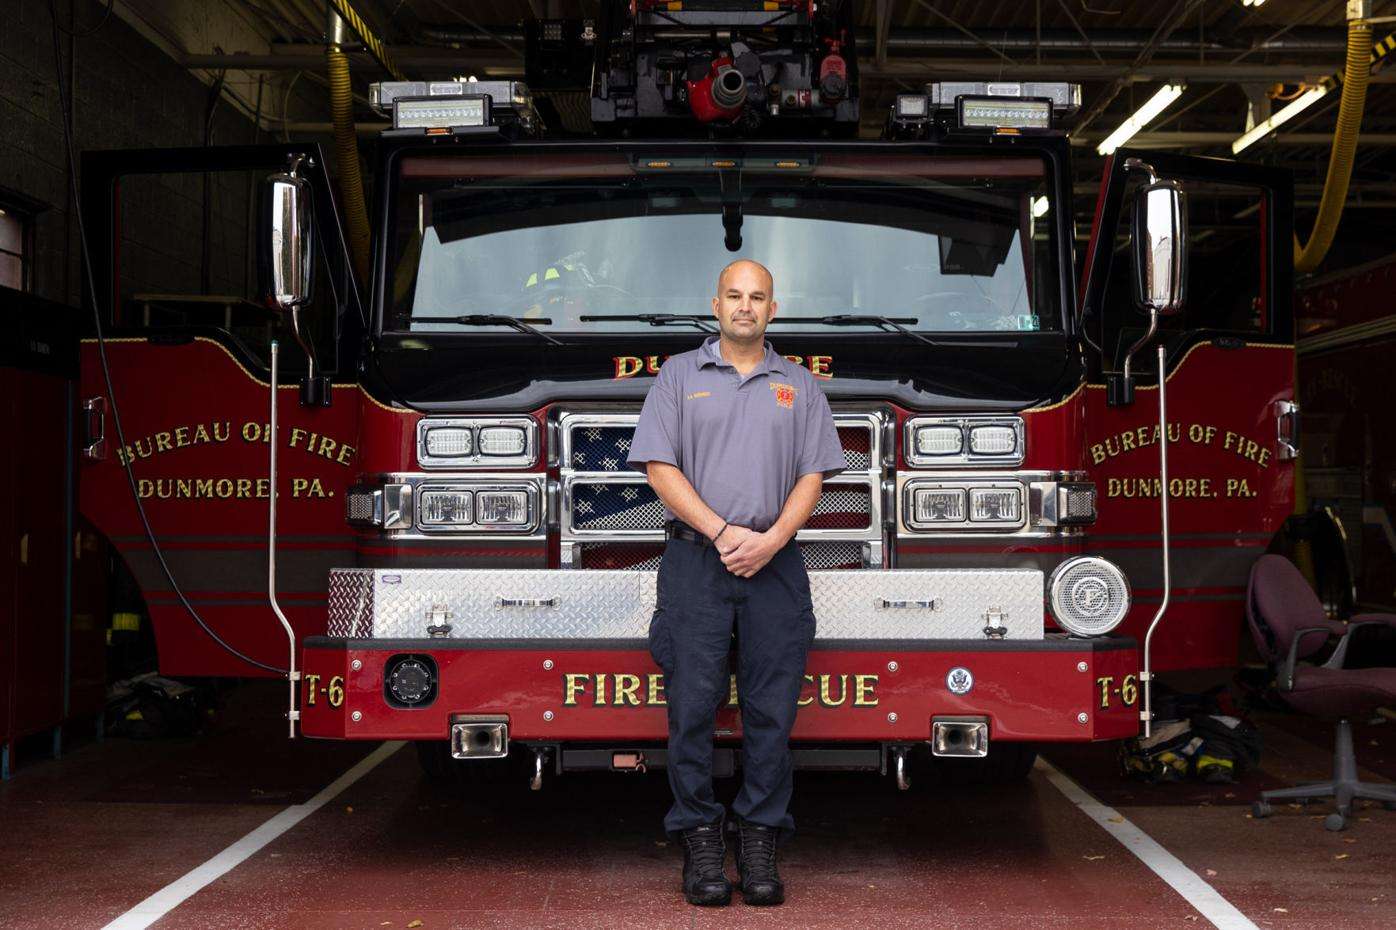 Dunmore firefighter lauded for heroism in fatal fire